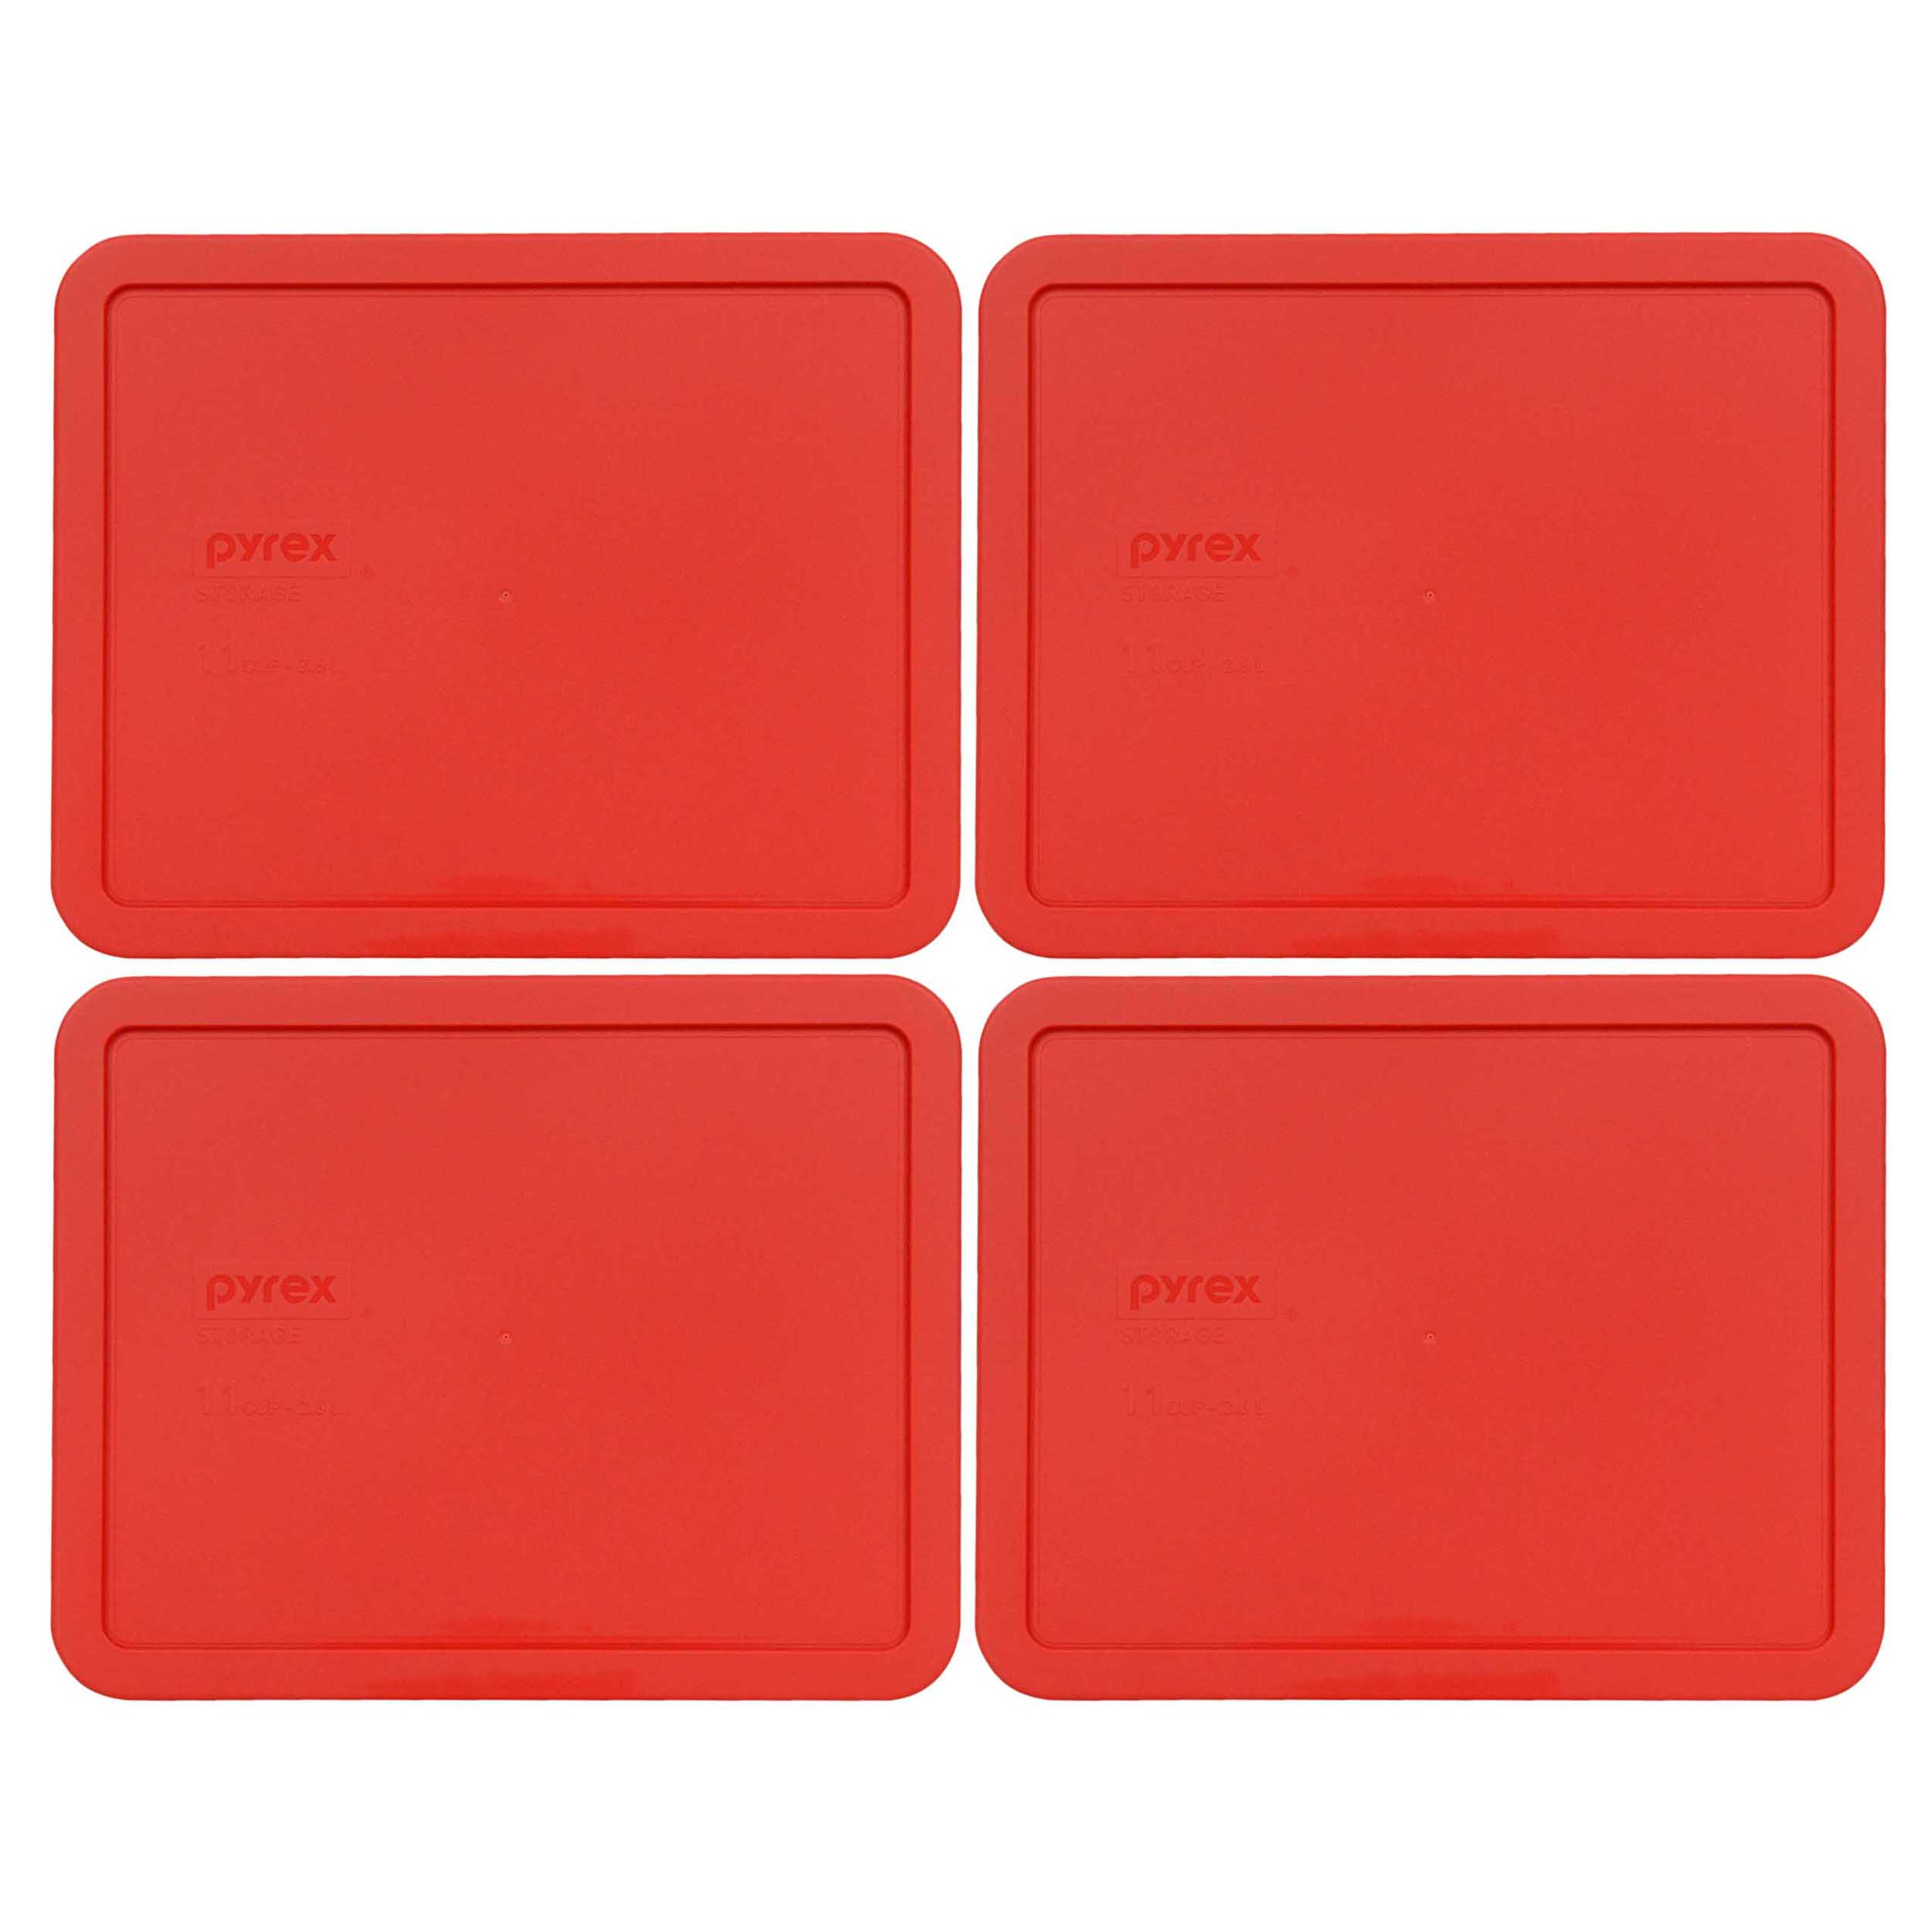 Pyrex Replacement Lid 7212-PC Blue Rectangle Cover (2-Pack) for Pyrex 7212 Dish (Sold Separately)